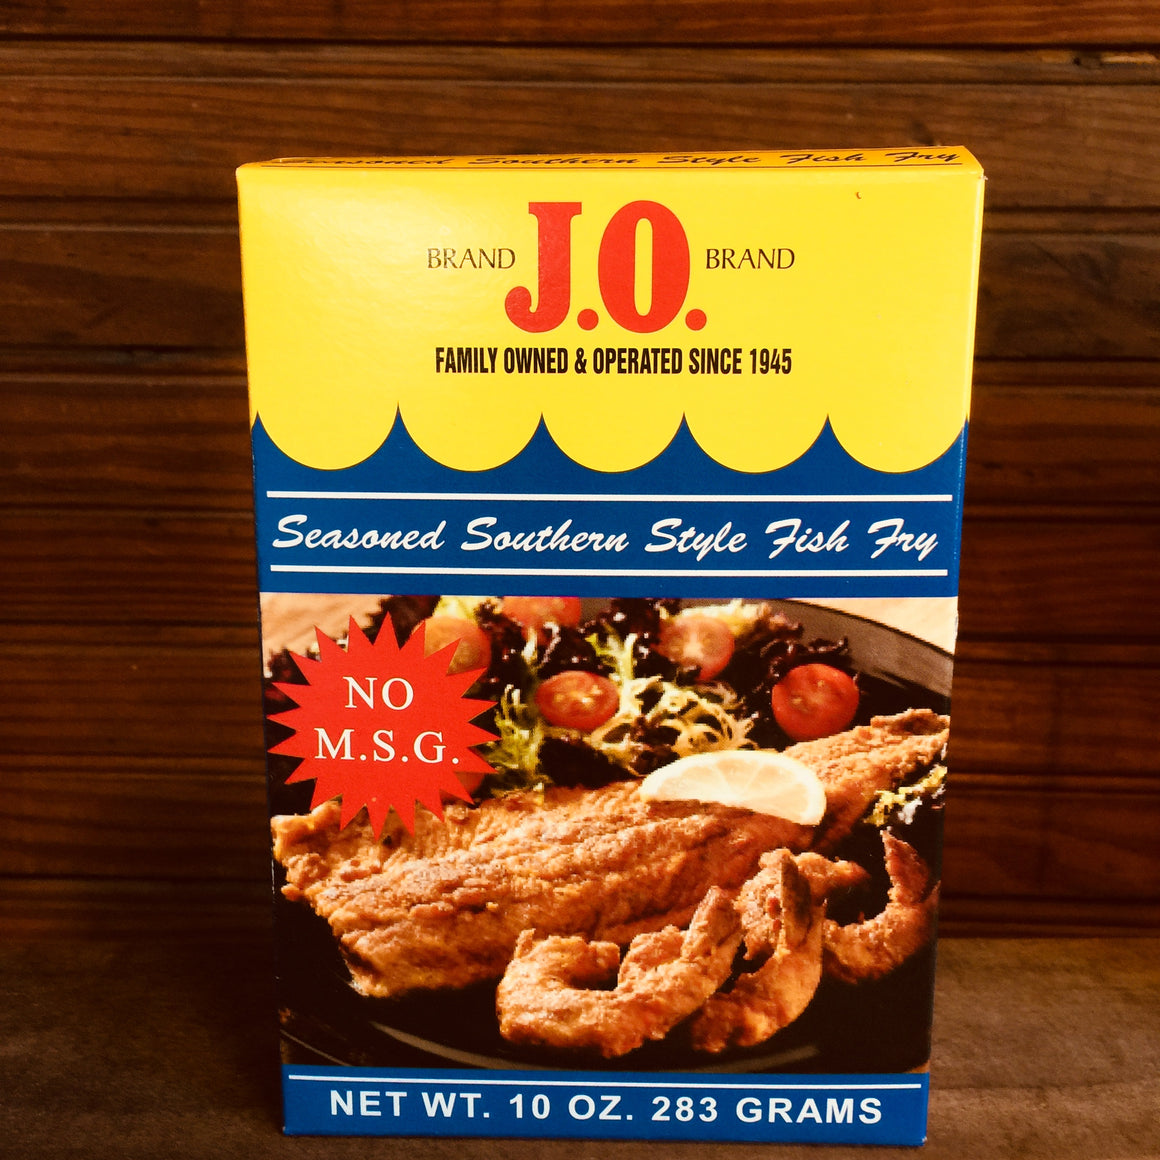 J.O. Brand Batter Mixes